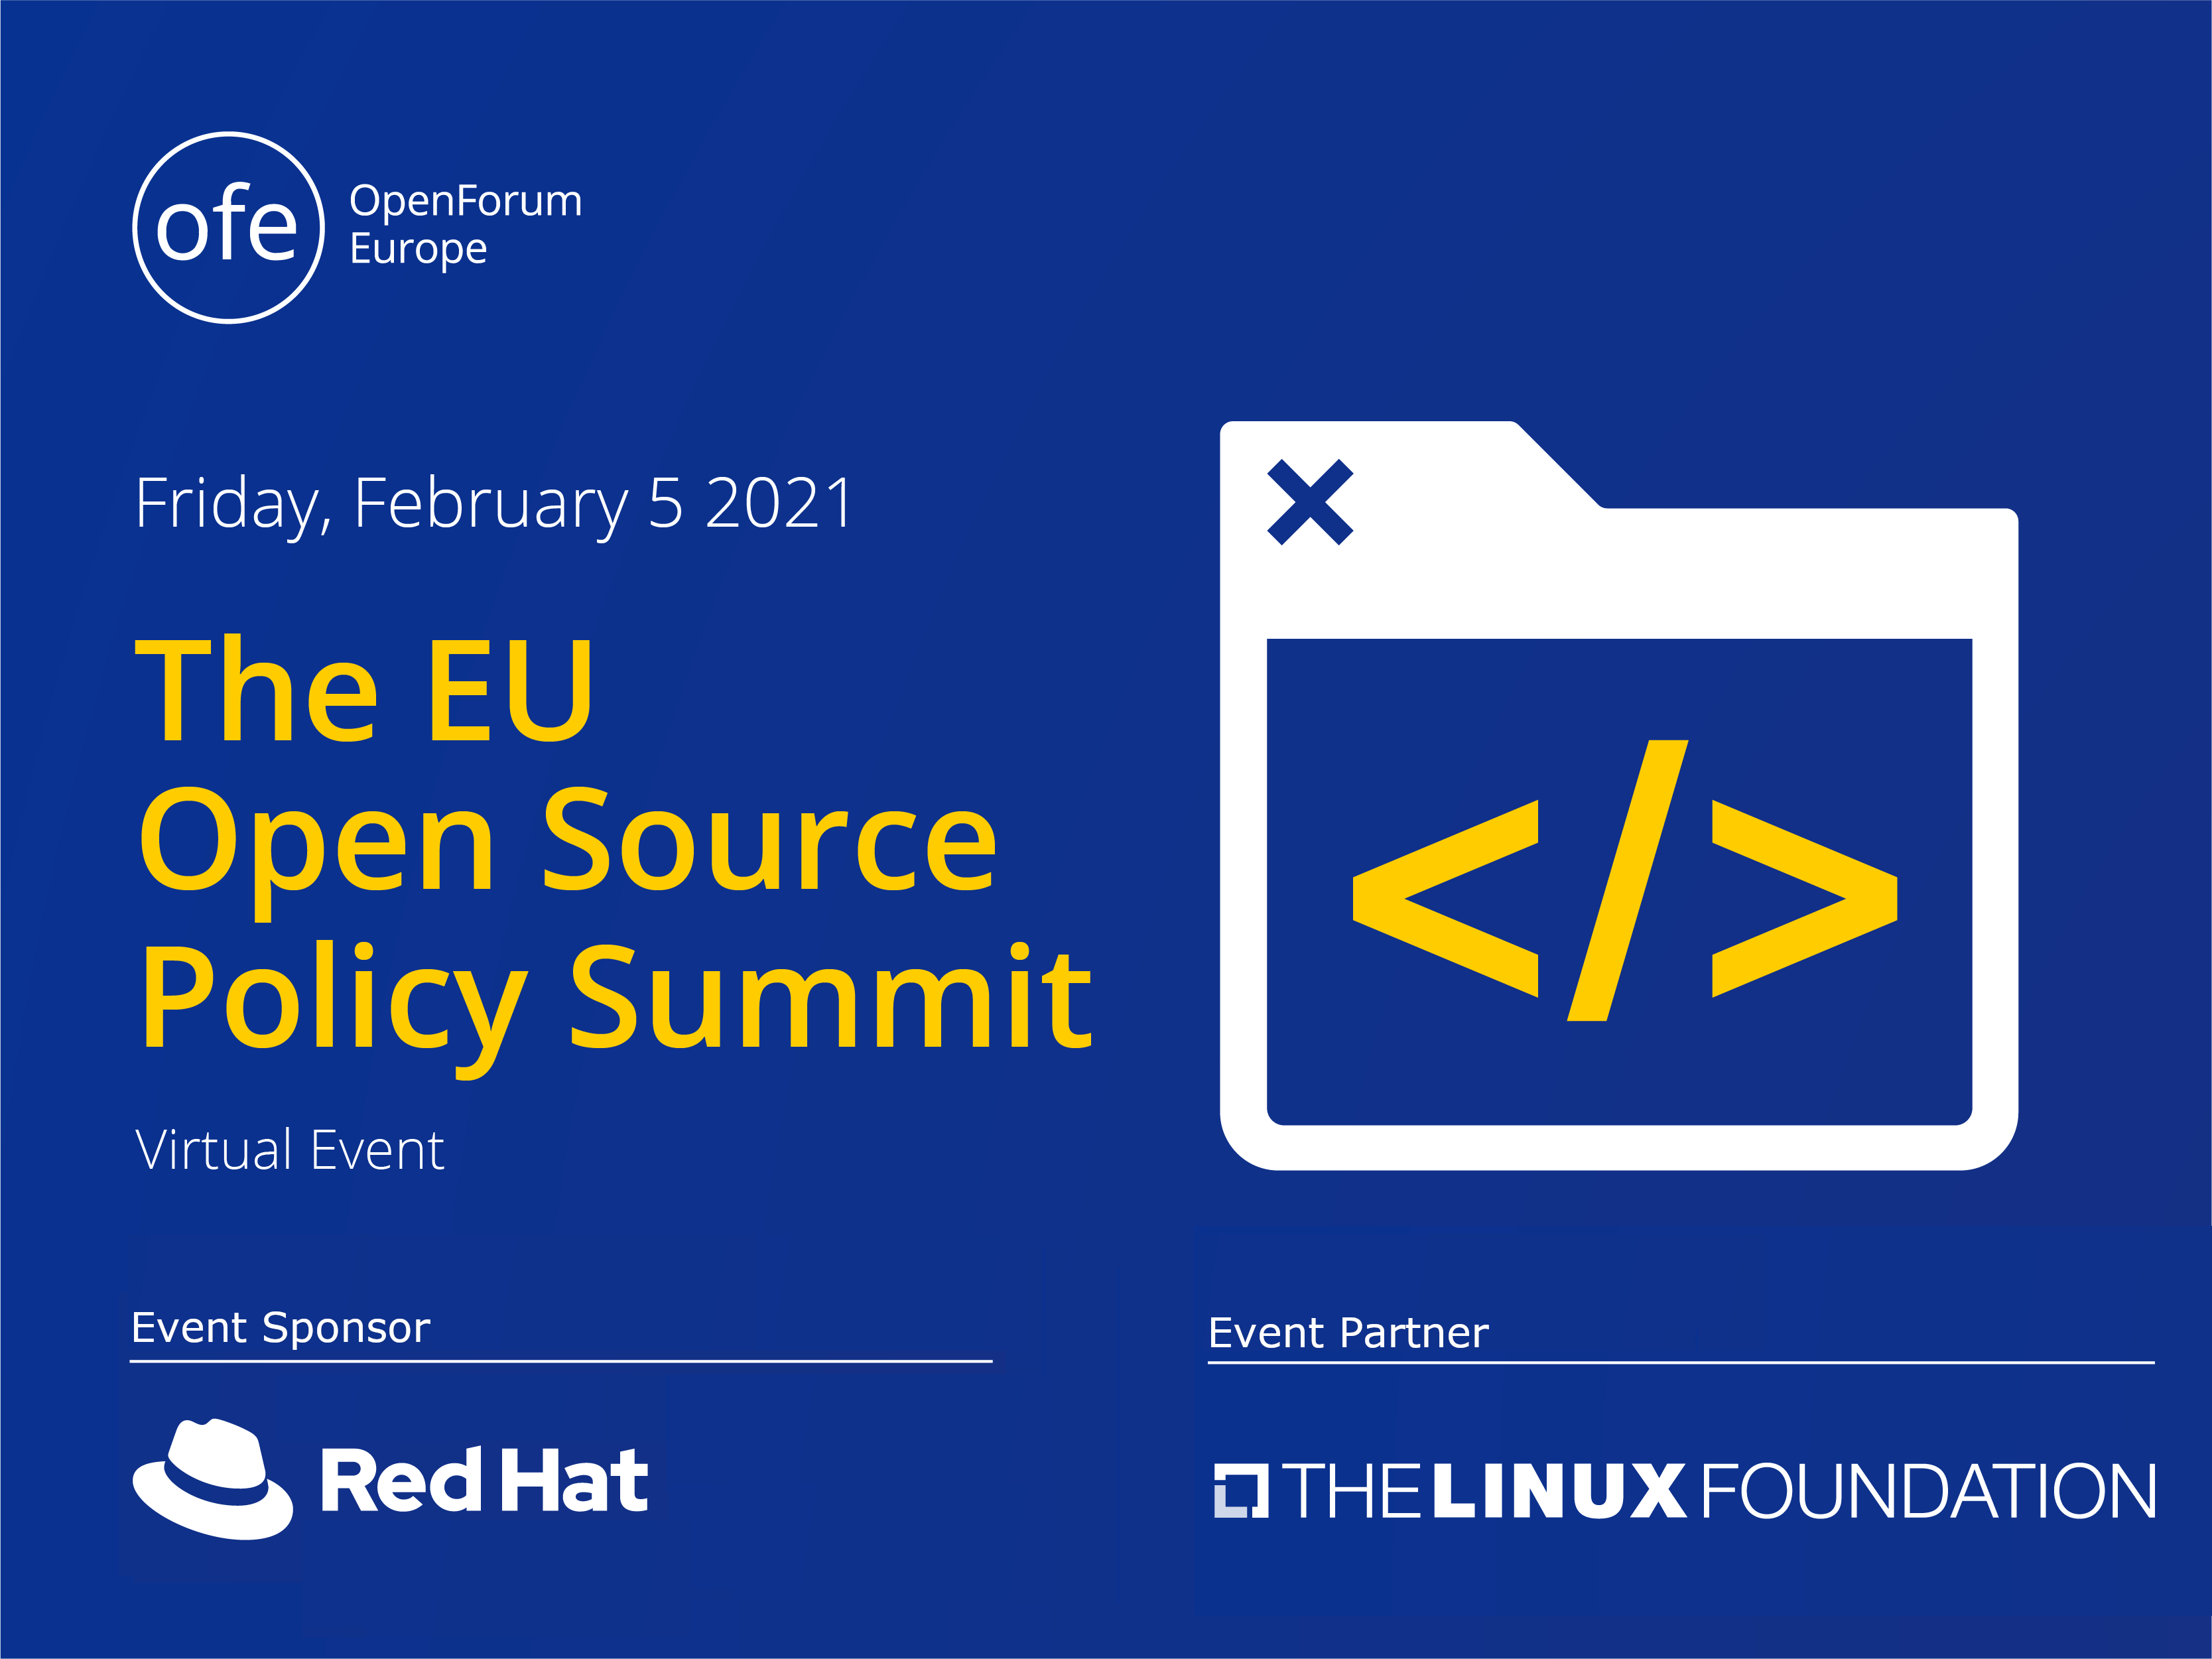 The EU Open Source Policy Summit 2021